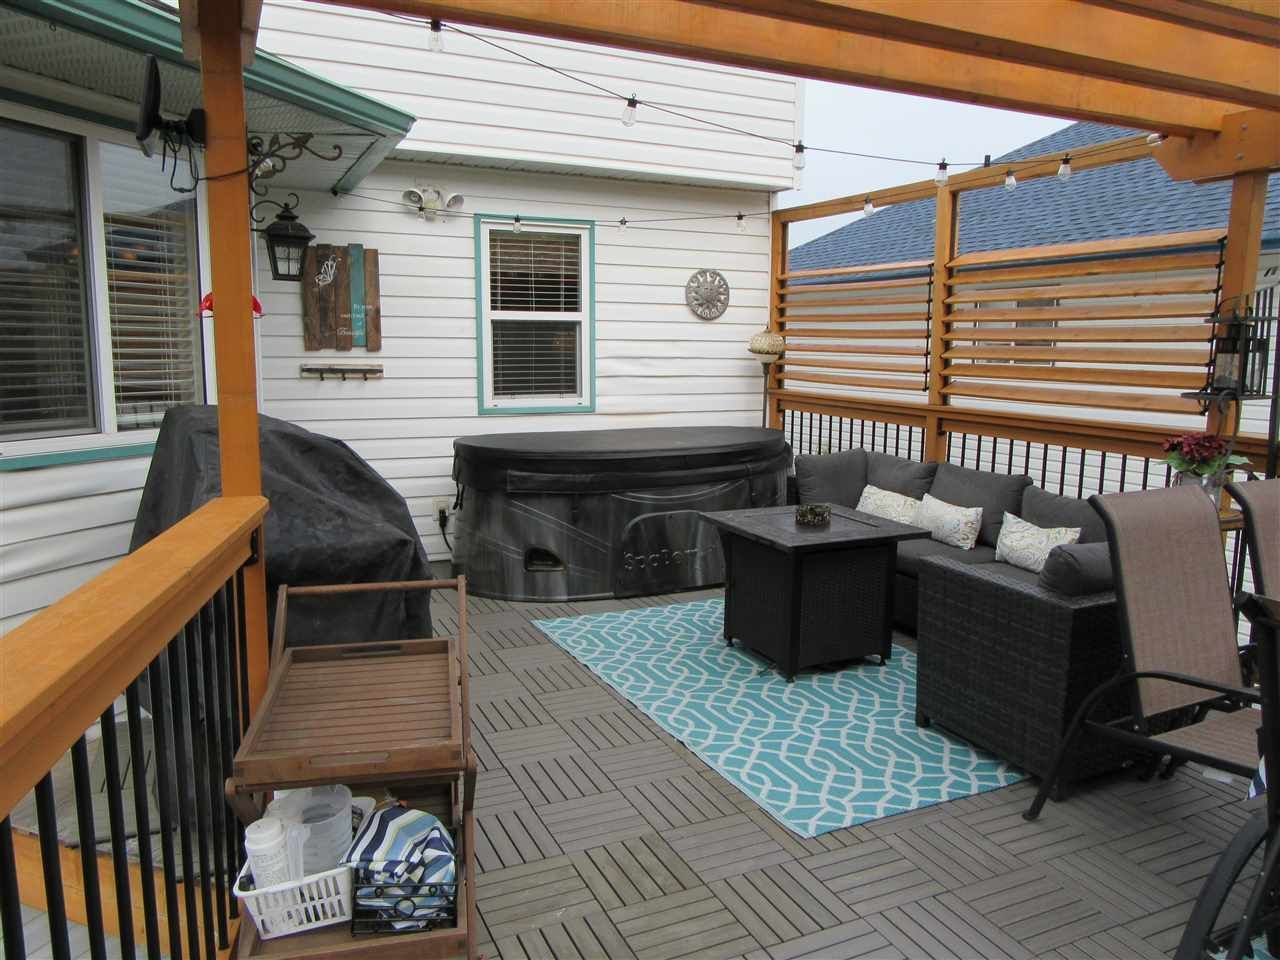 """Photo 8: Photos: 4305 FOSTER Road in Prince George: Charella/Starlane House for sale in """"CHARELLA/STARLANE"""" (PG City South (Zone 74))  : MLS®# R2499513"""